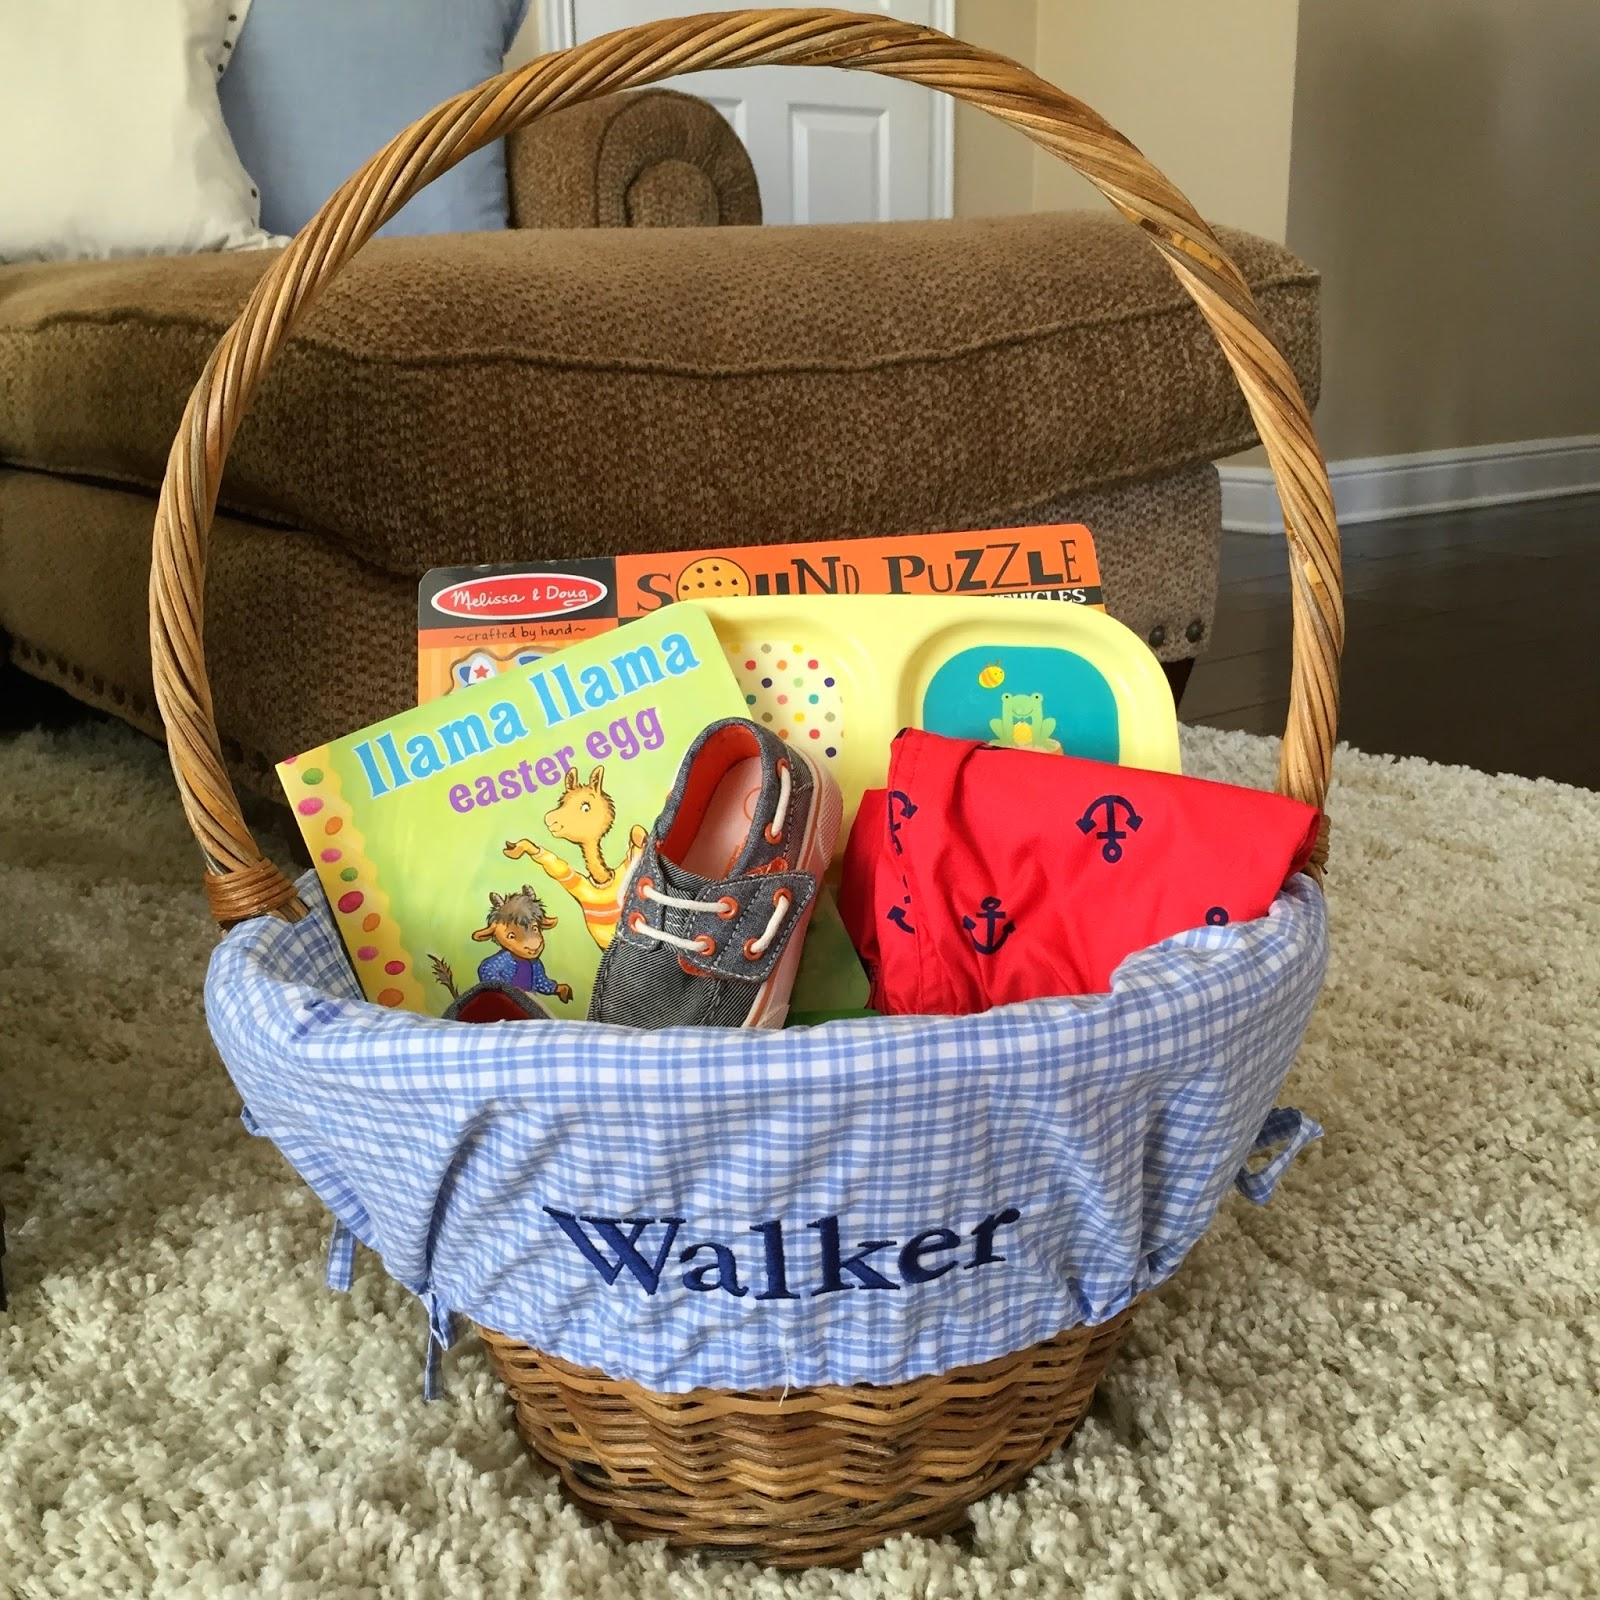 Life as the mrs easter basket blog hop walkers easter basket inside his easter basket is llama llama easter egg a pair of shoes a divided plate from targets 1 aisle sidewalk chalk a swimsuit and rash guard negle Choice Image